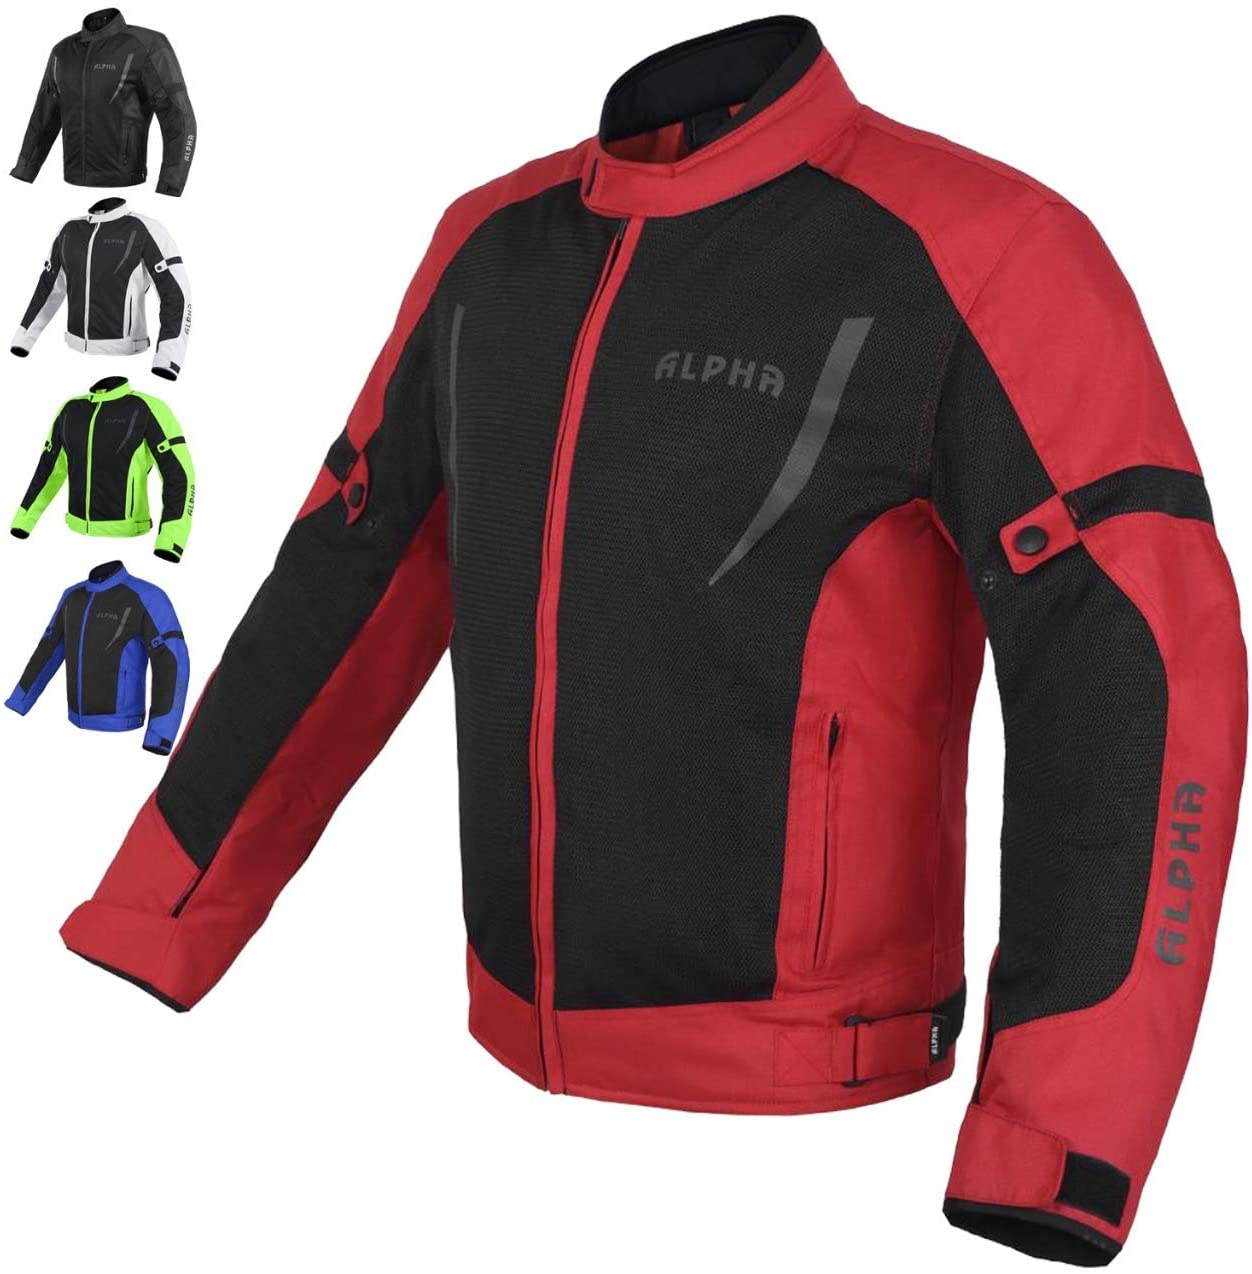 HI VIS MESH MOTORCYCLE JACKET FOR MENS RIDING BIKERS RACING DUAL SPORTS BIKE ARMORED PROTECTIVE (RED, X-LARGE)